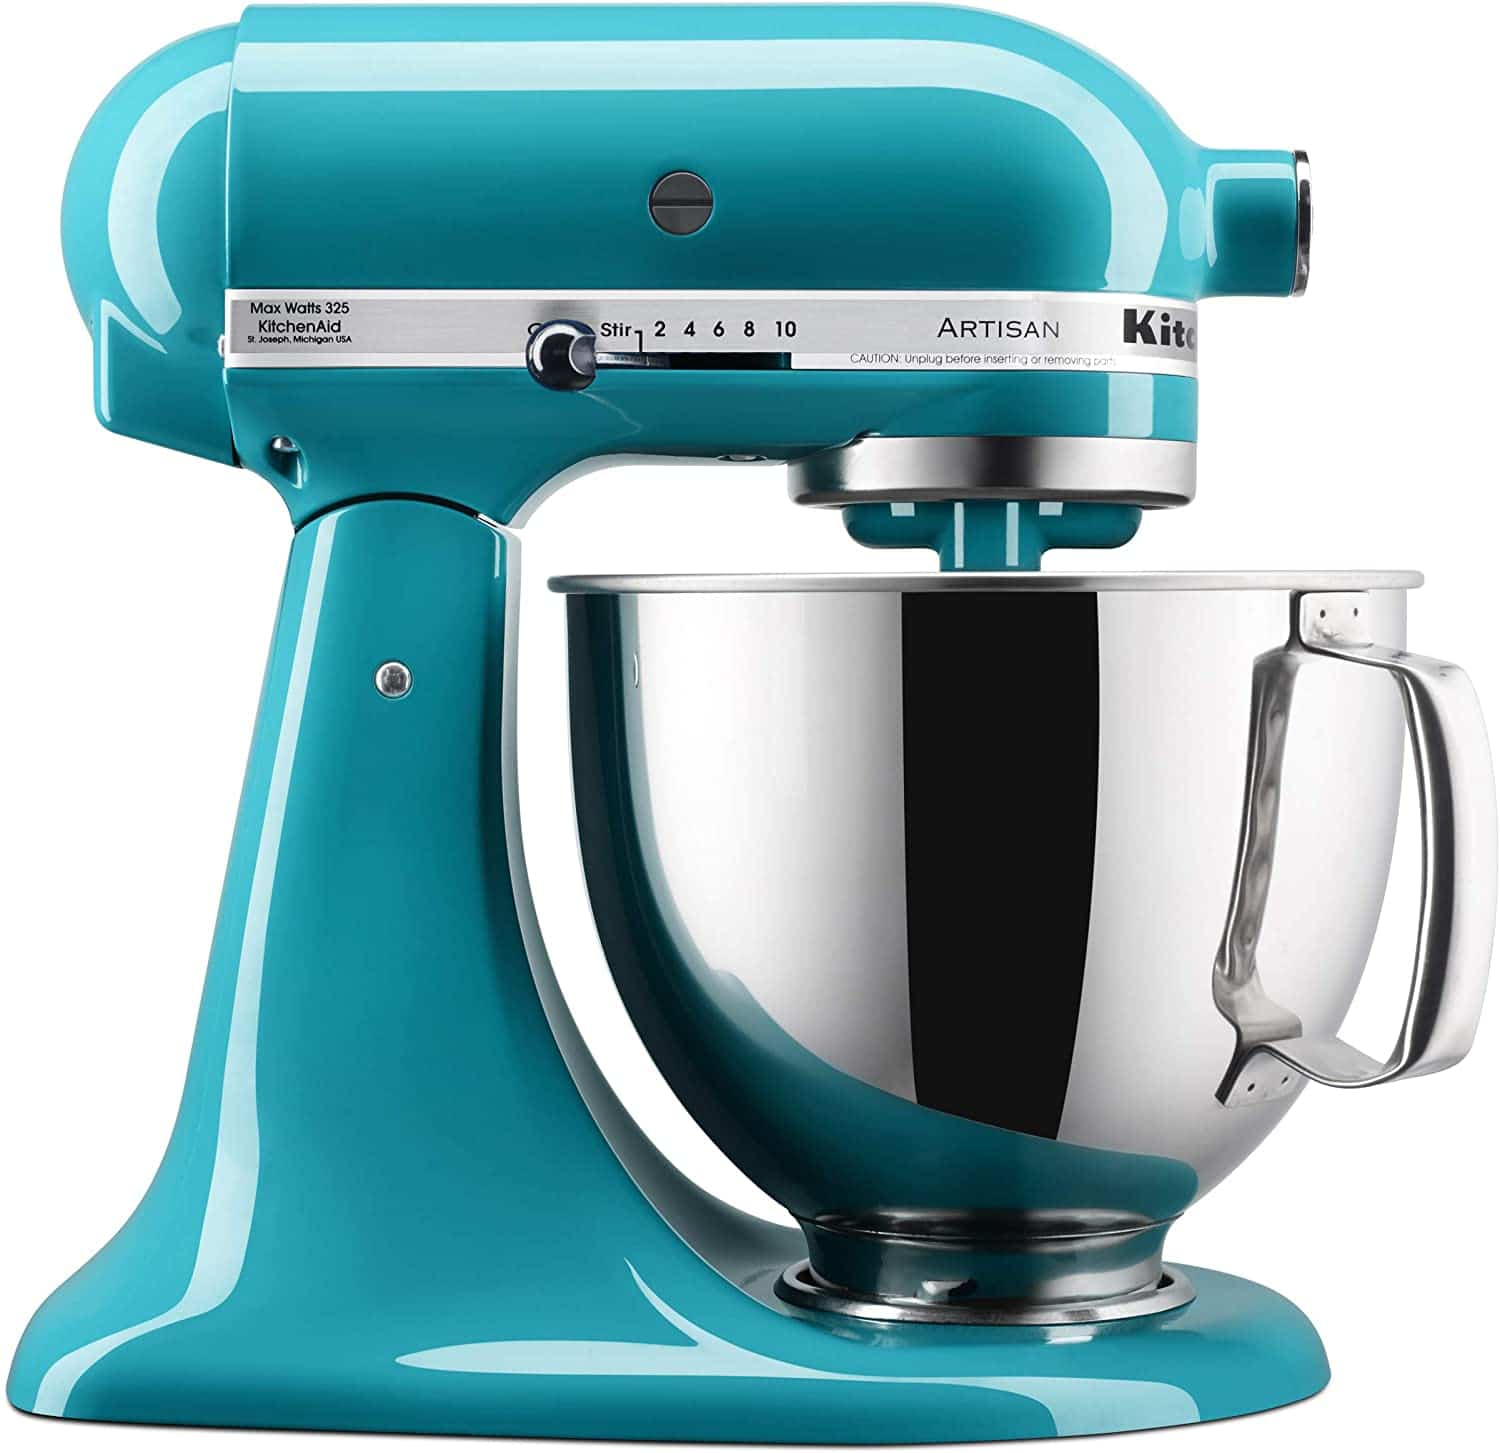 kitchenaid stand mixer 5 qt turquoise color